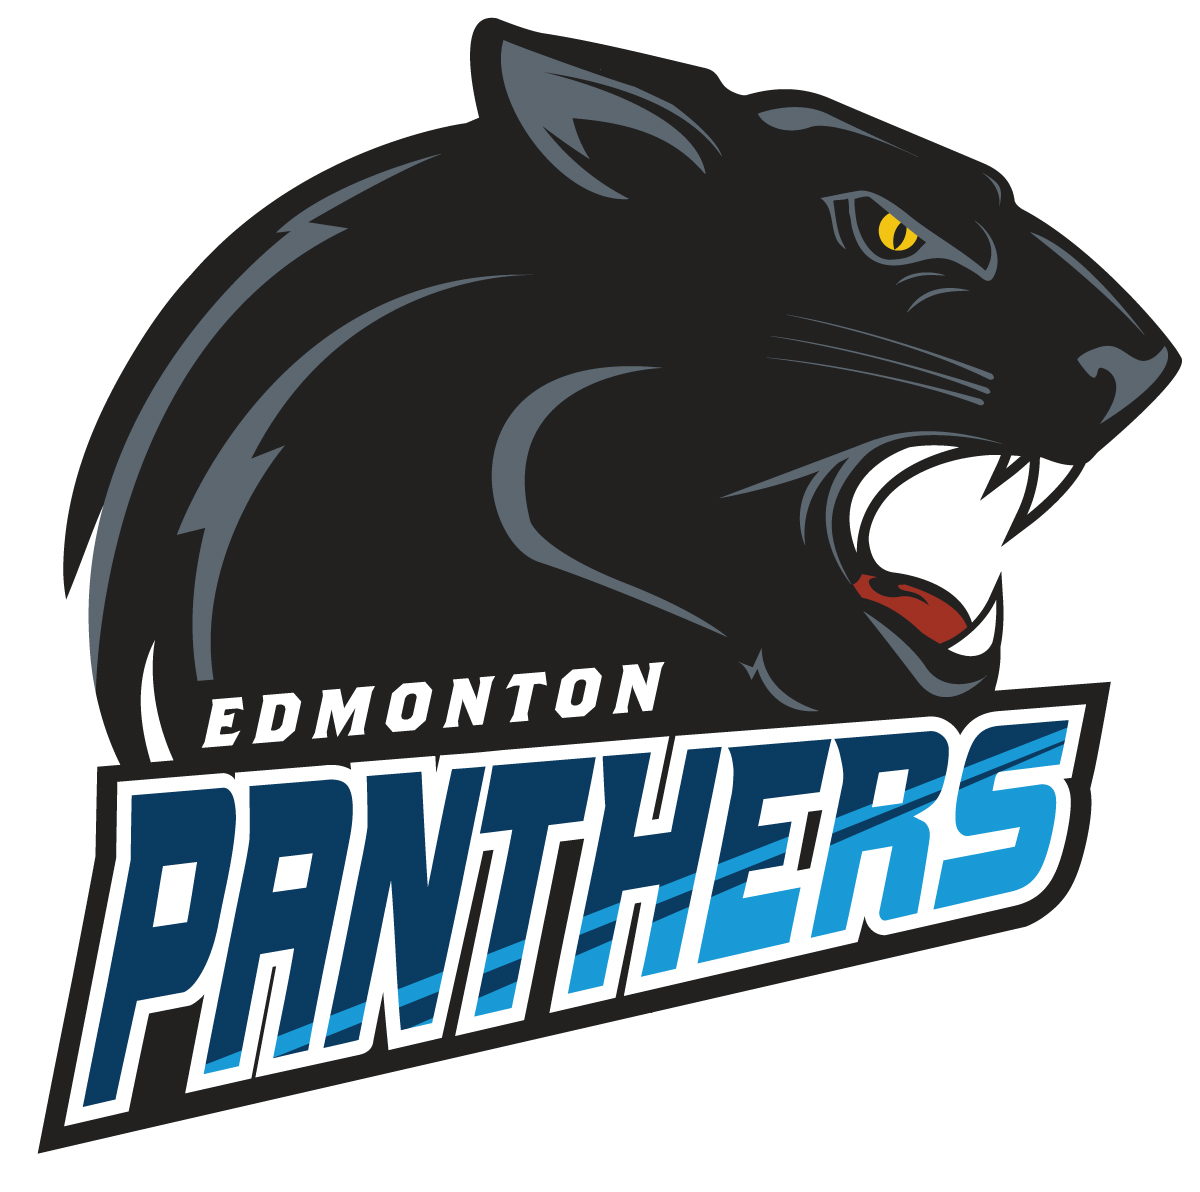 edmonton-panthers_final-front.jpg (313 KB)